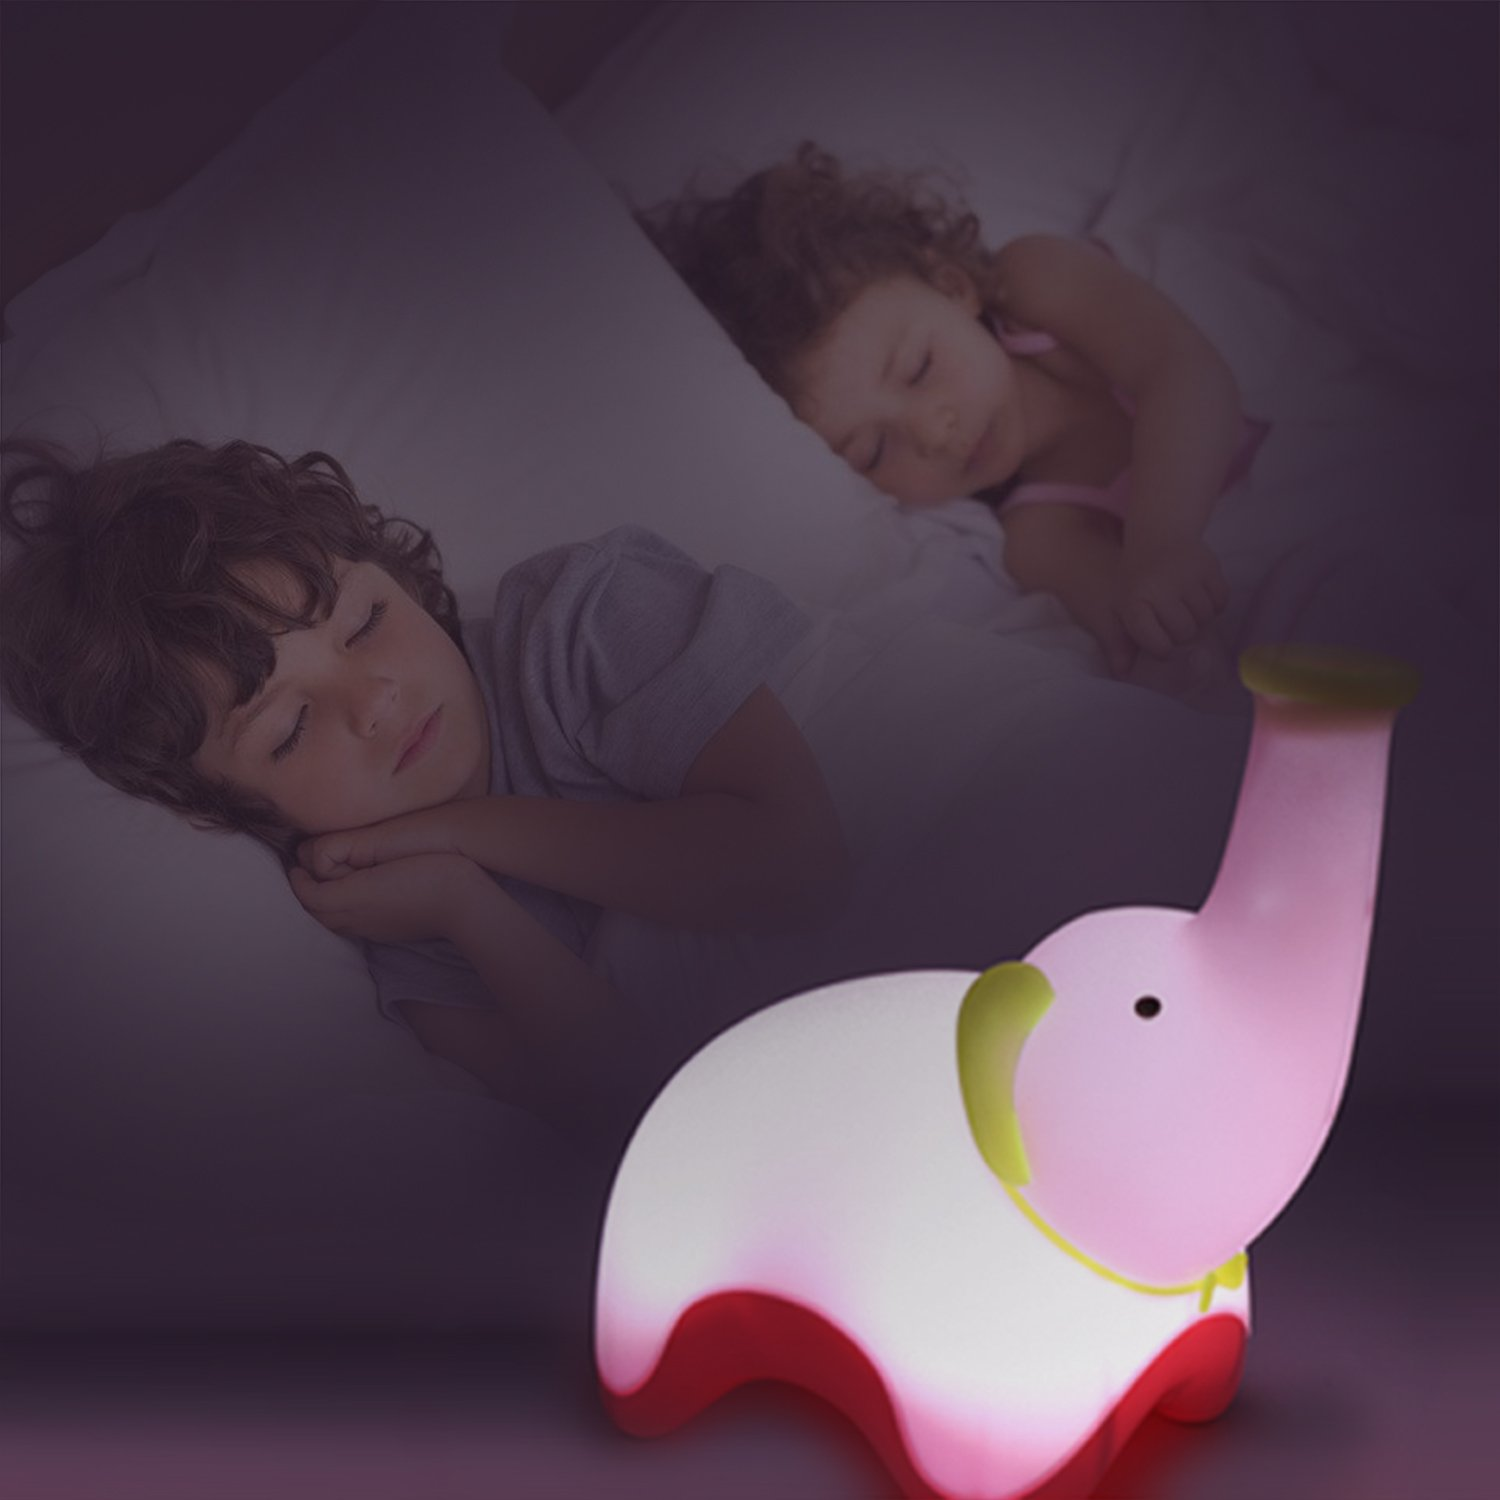 COOLCT 3D Big Size Pink Elephant Night Lamp You can Blow or tap to Light or Off Limited Cool Create Technology Co